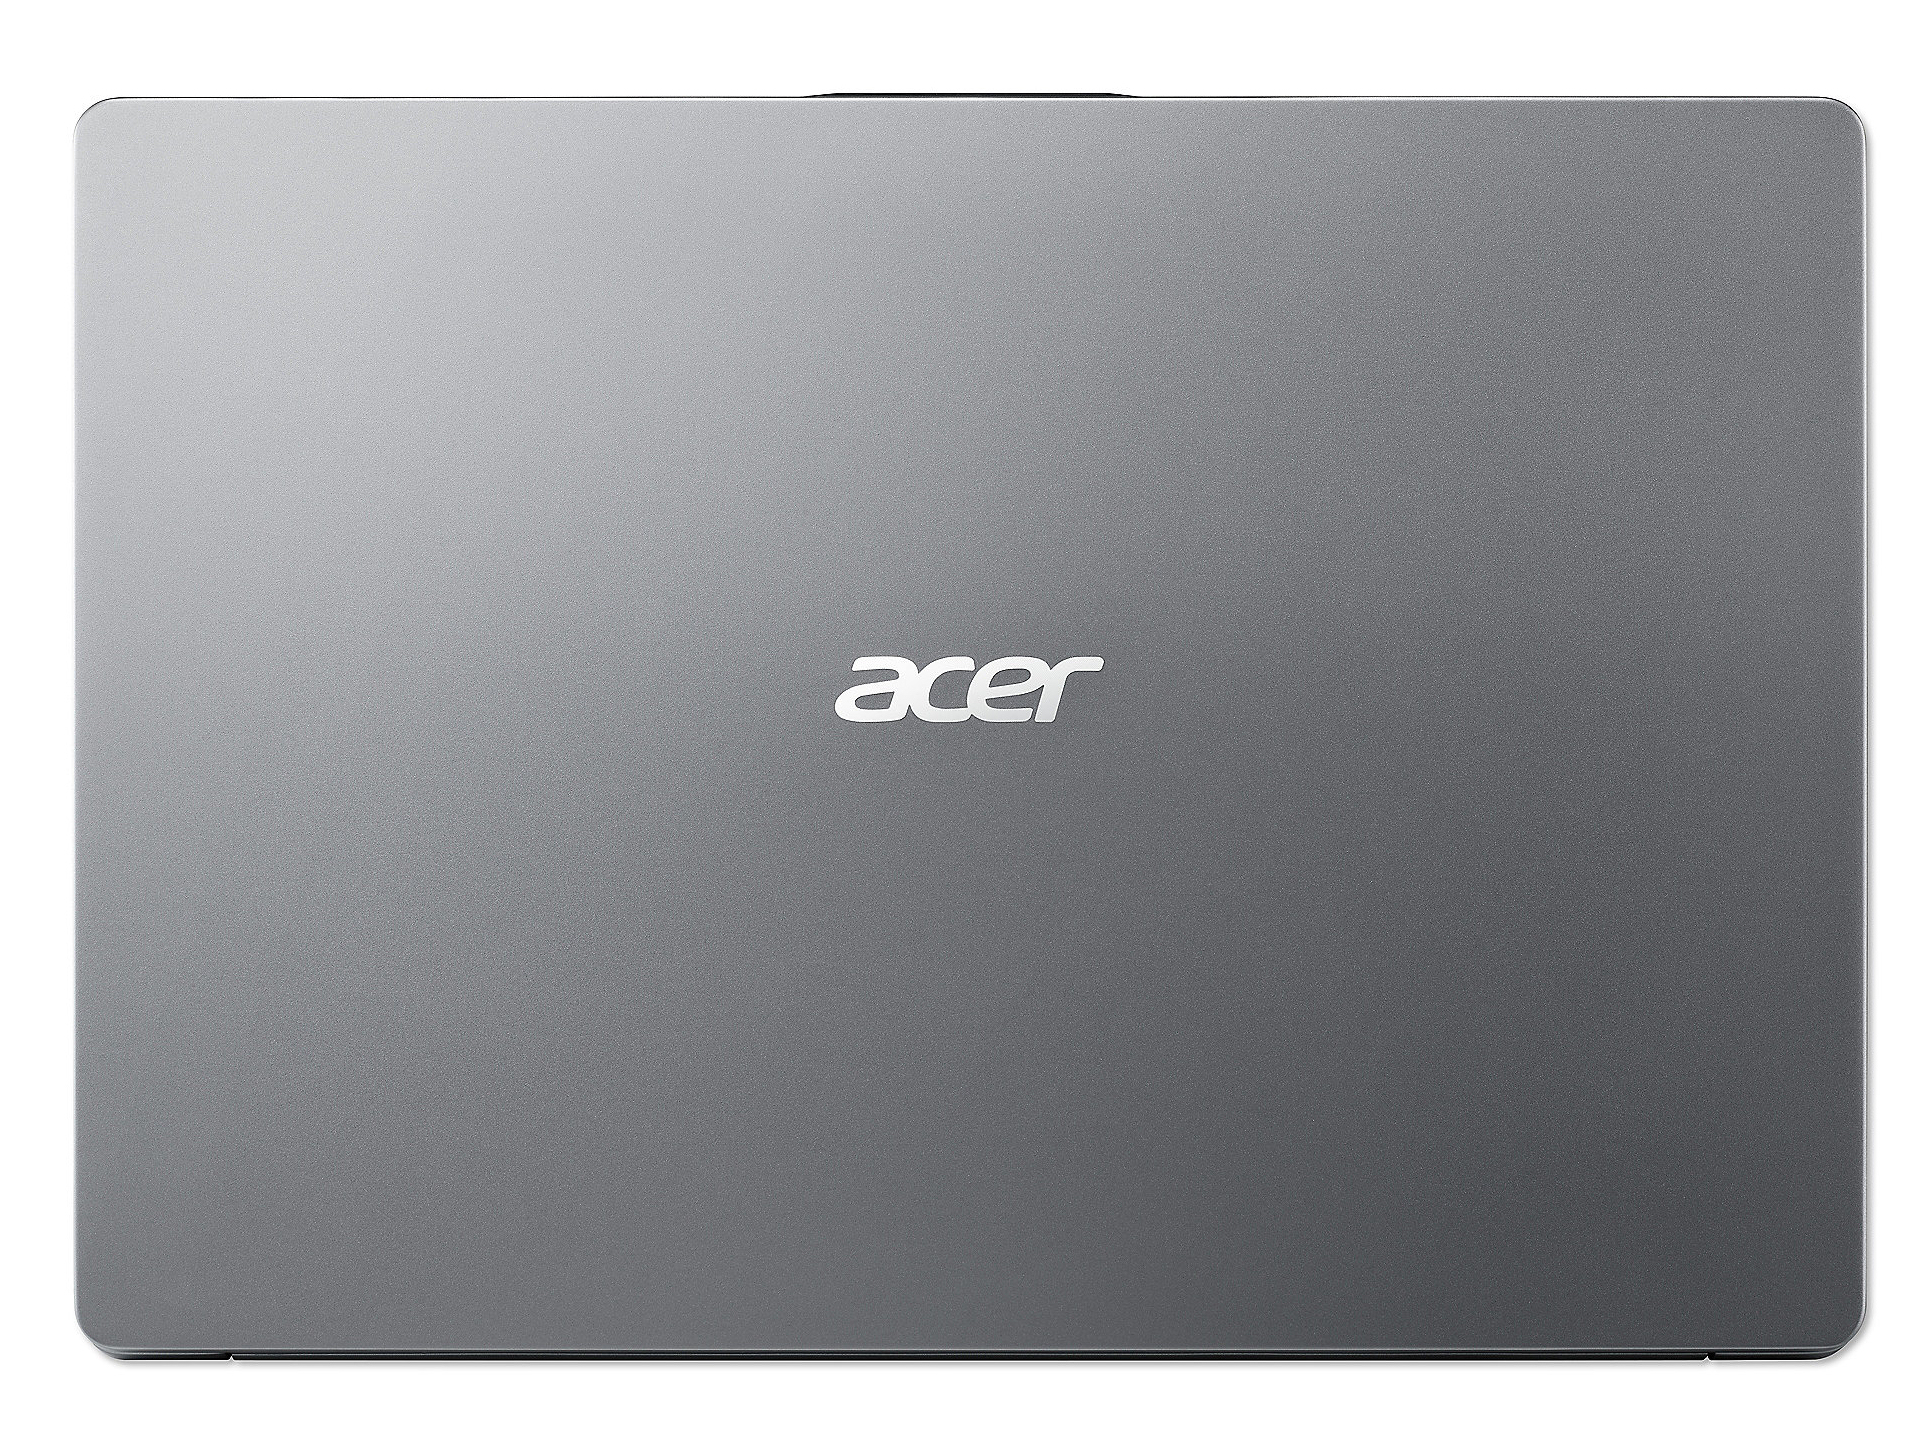 Acer Swift 1 Sf114 32 N5000 Ssd Fhd Laptop Review